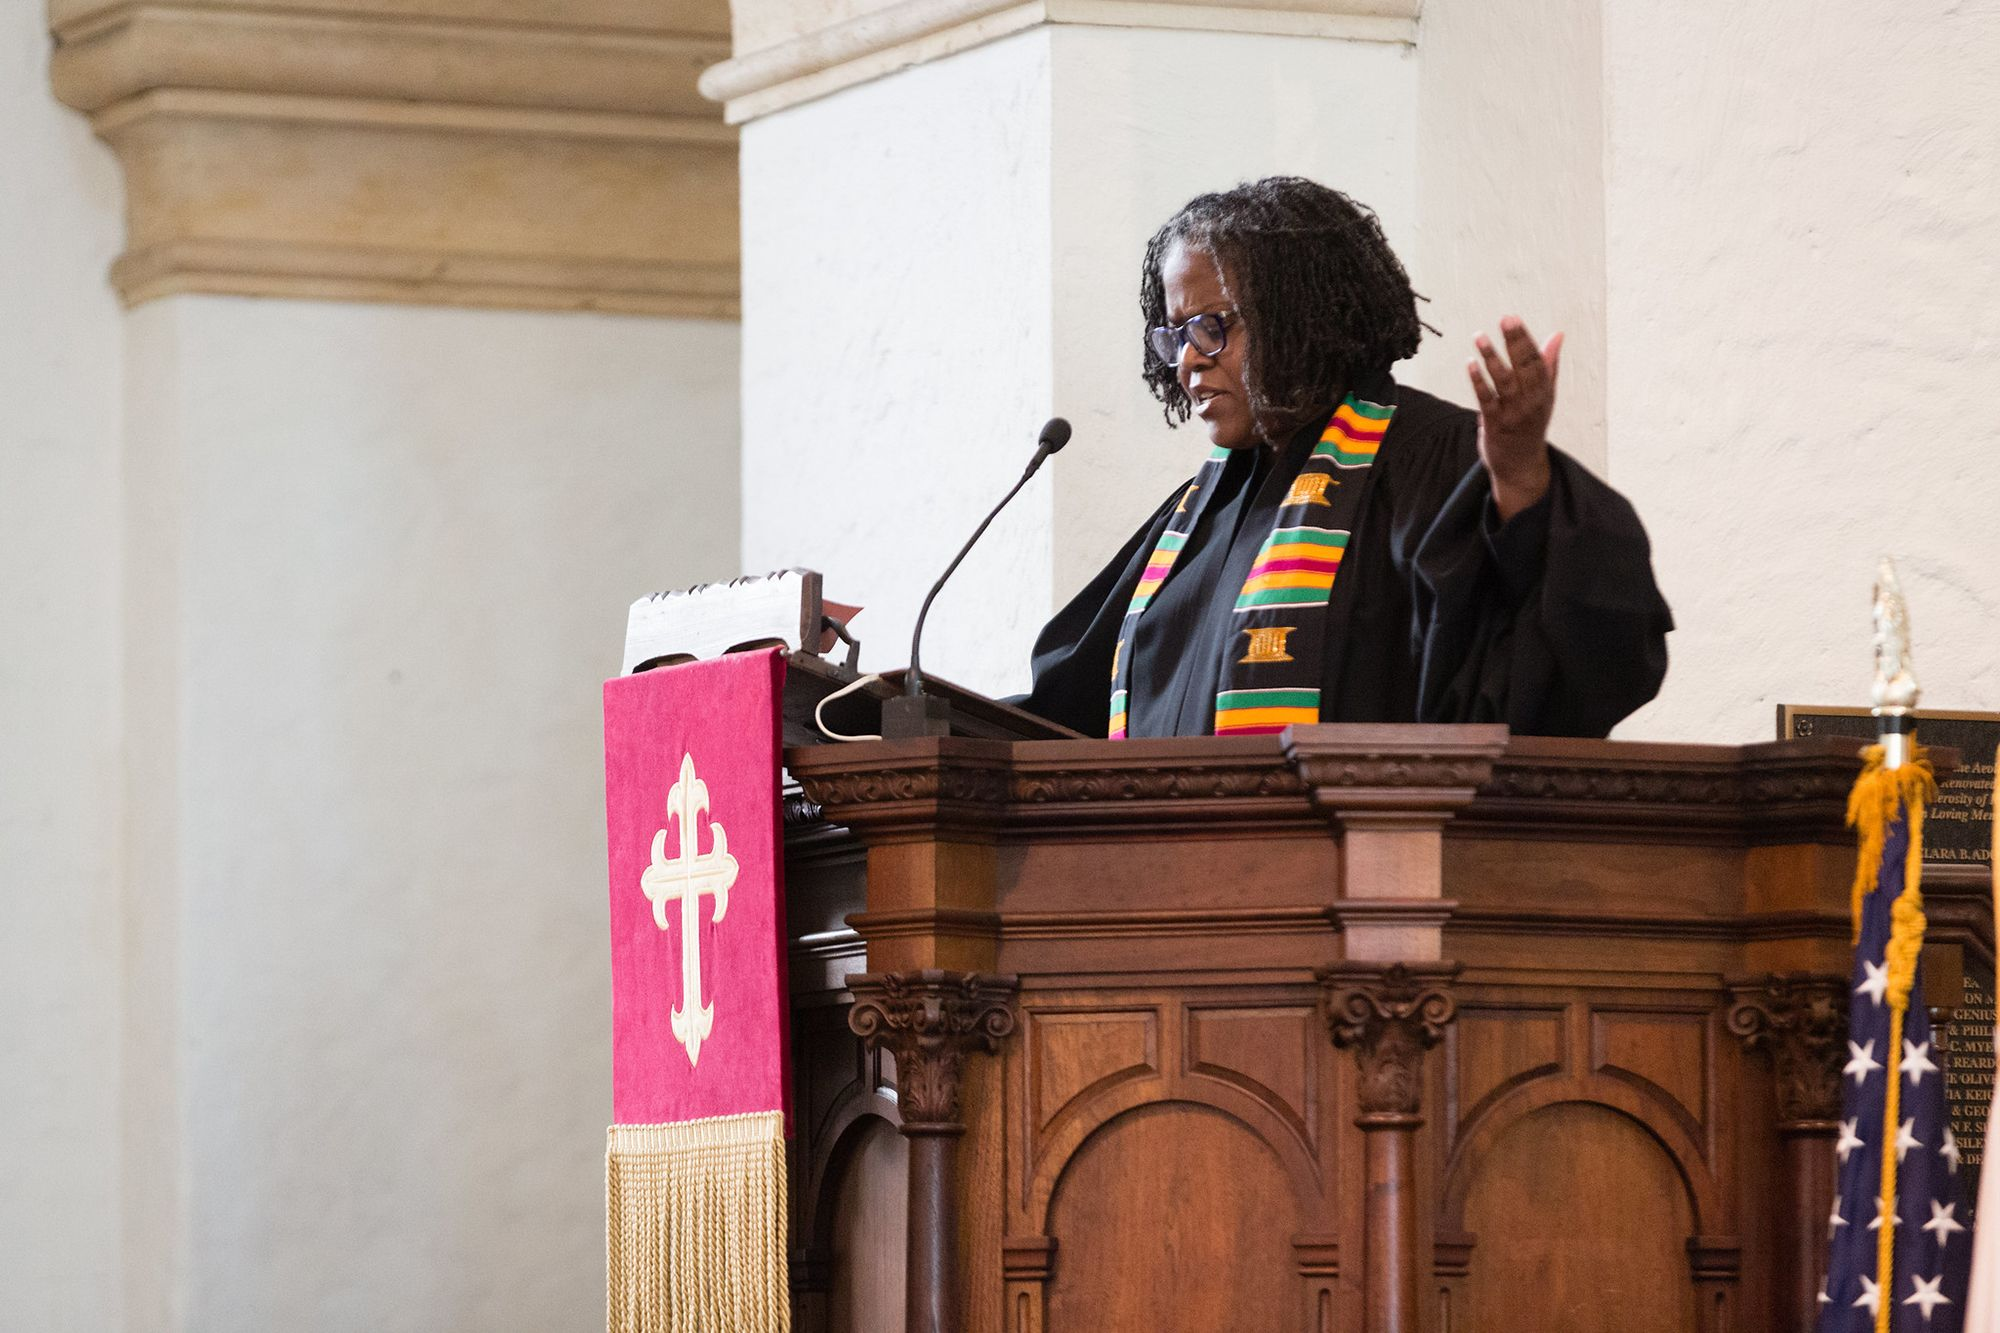 Rev. Katrina Jenkins, Rollins' dean of religious life, speaks from the pulpit in Knowles Memorial Chapel.